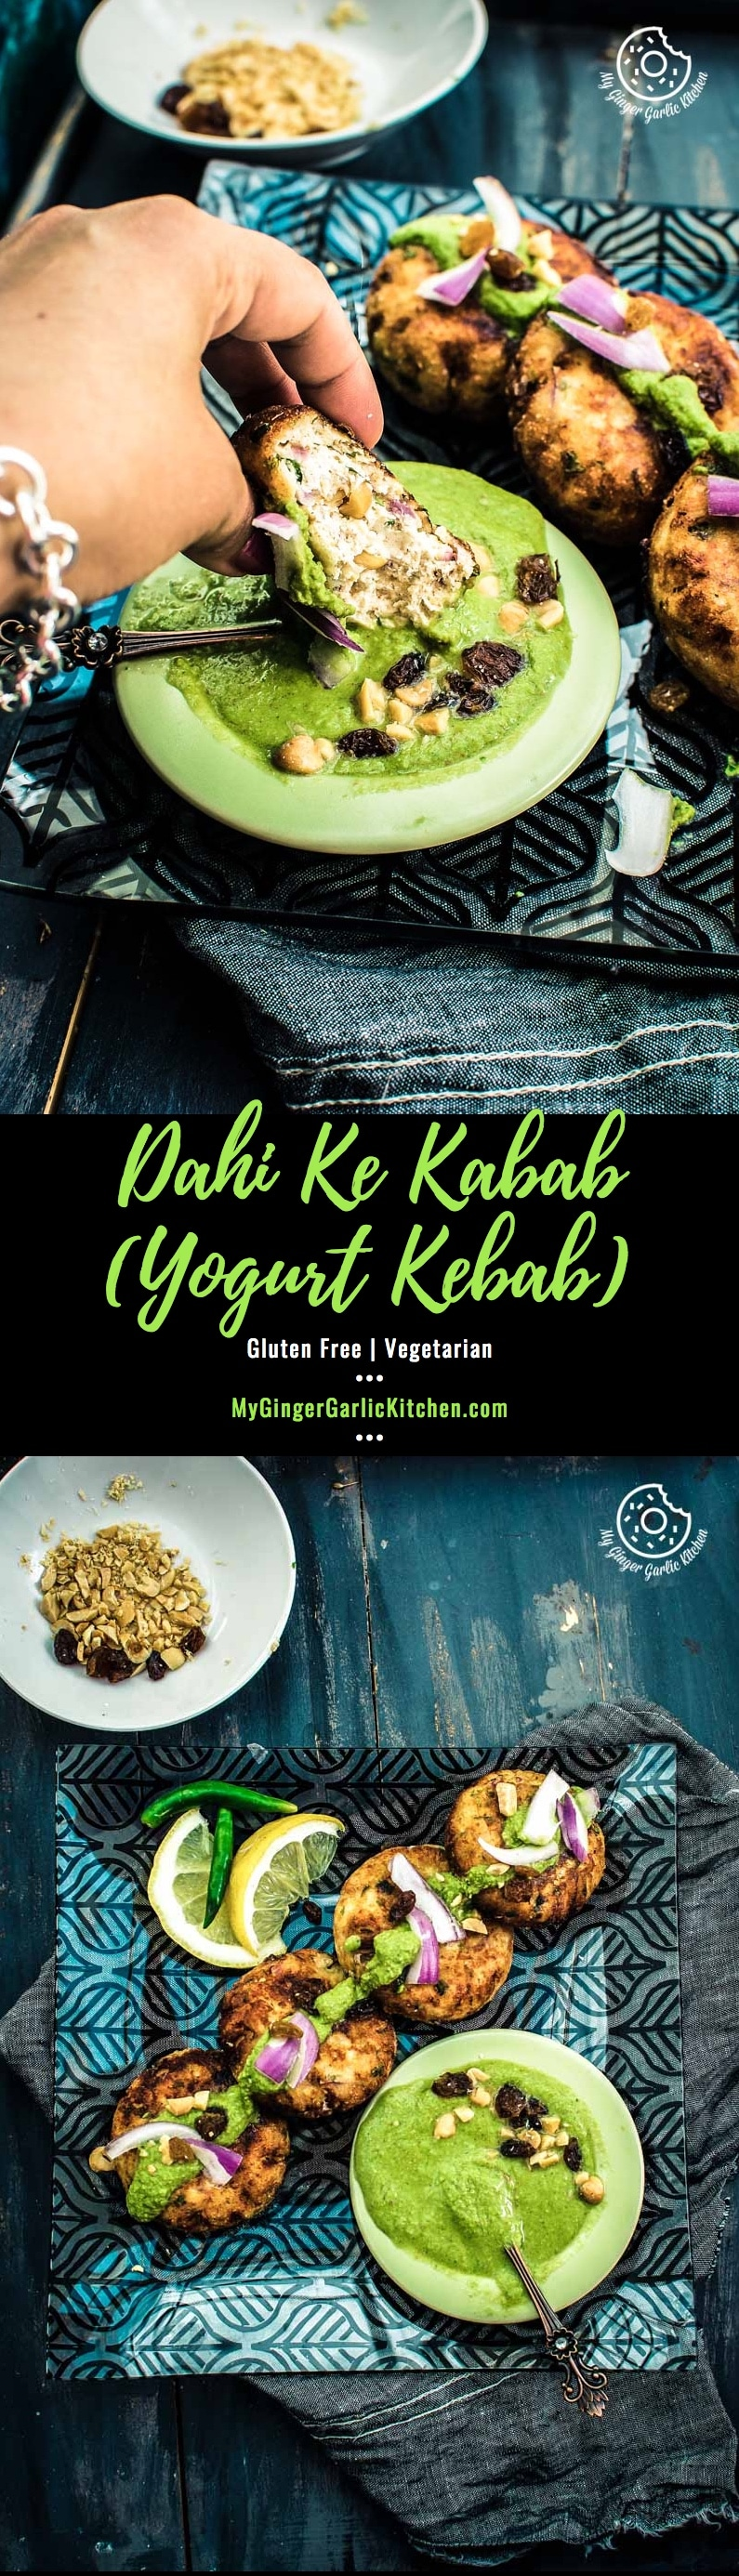 How To Make Dahi Ke Kabab | Yogurt Kebab | Dahi Kebab | mygingergarlickitchen.com/ @anupama_dreams